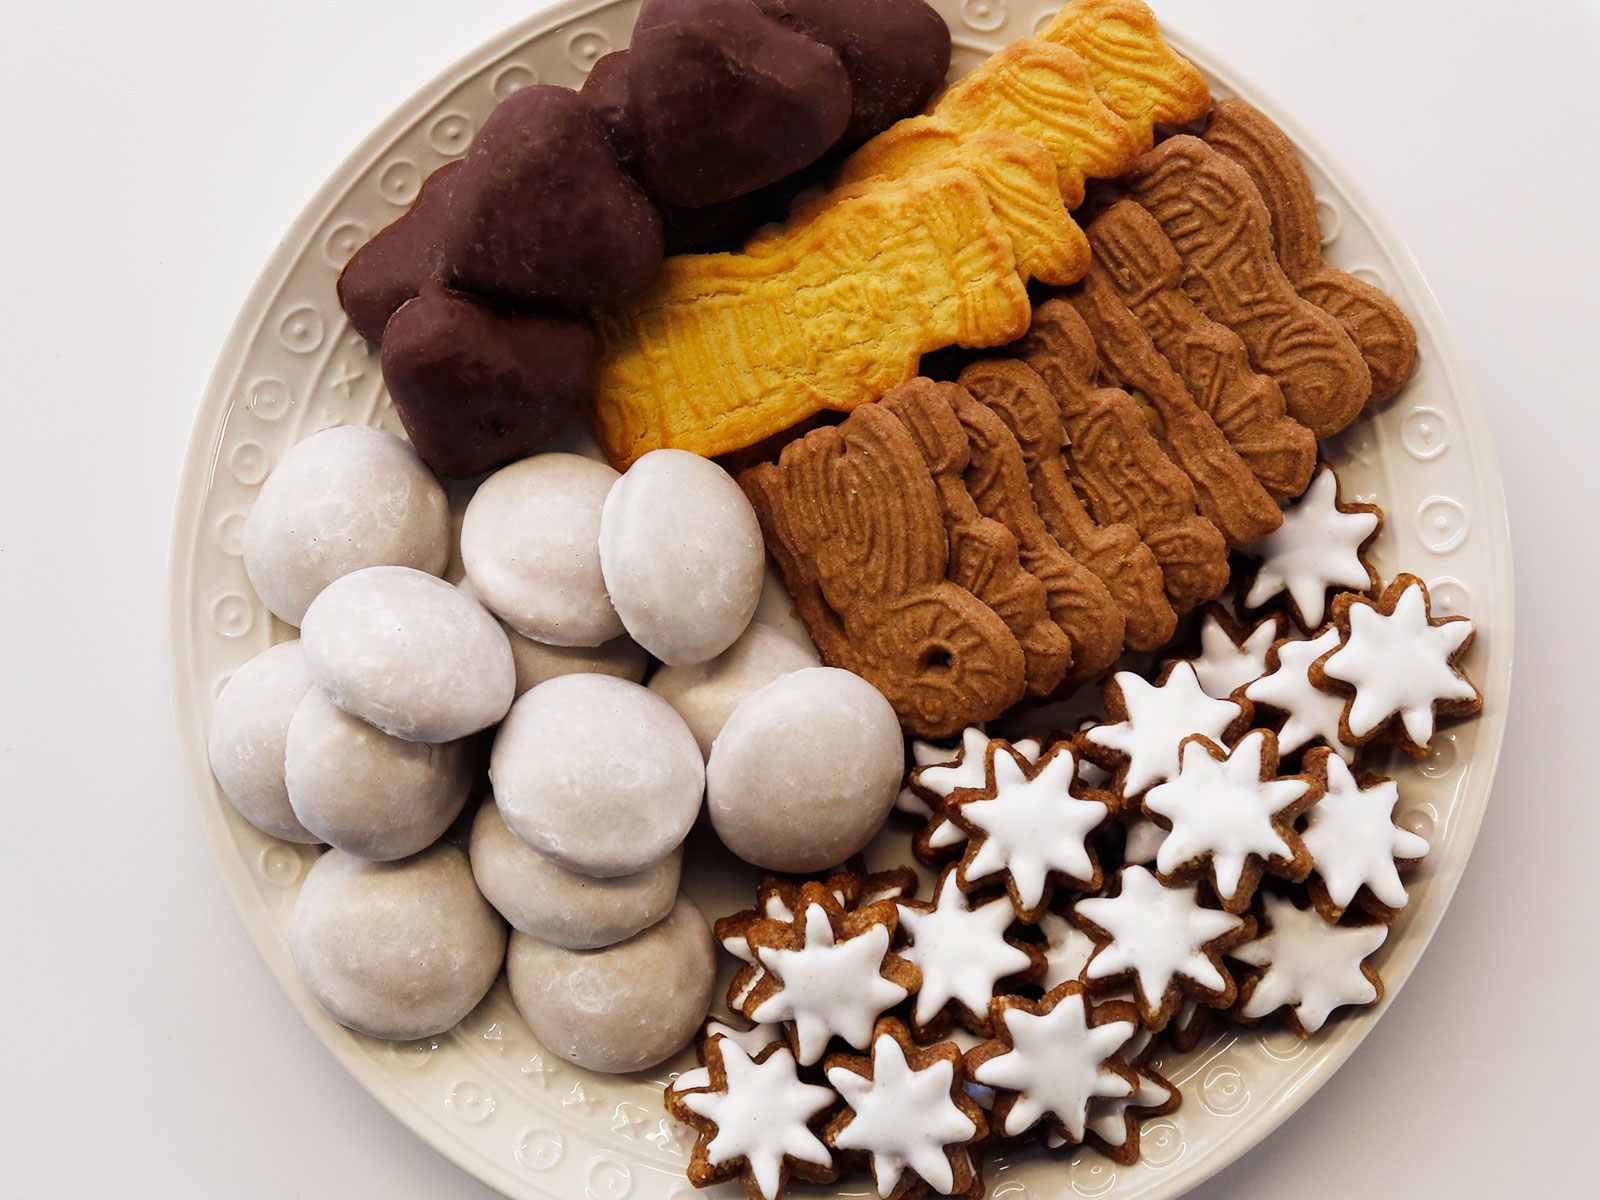 These Imported German Christmas Cookies From Aldi Are Kind of Amazing